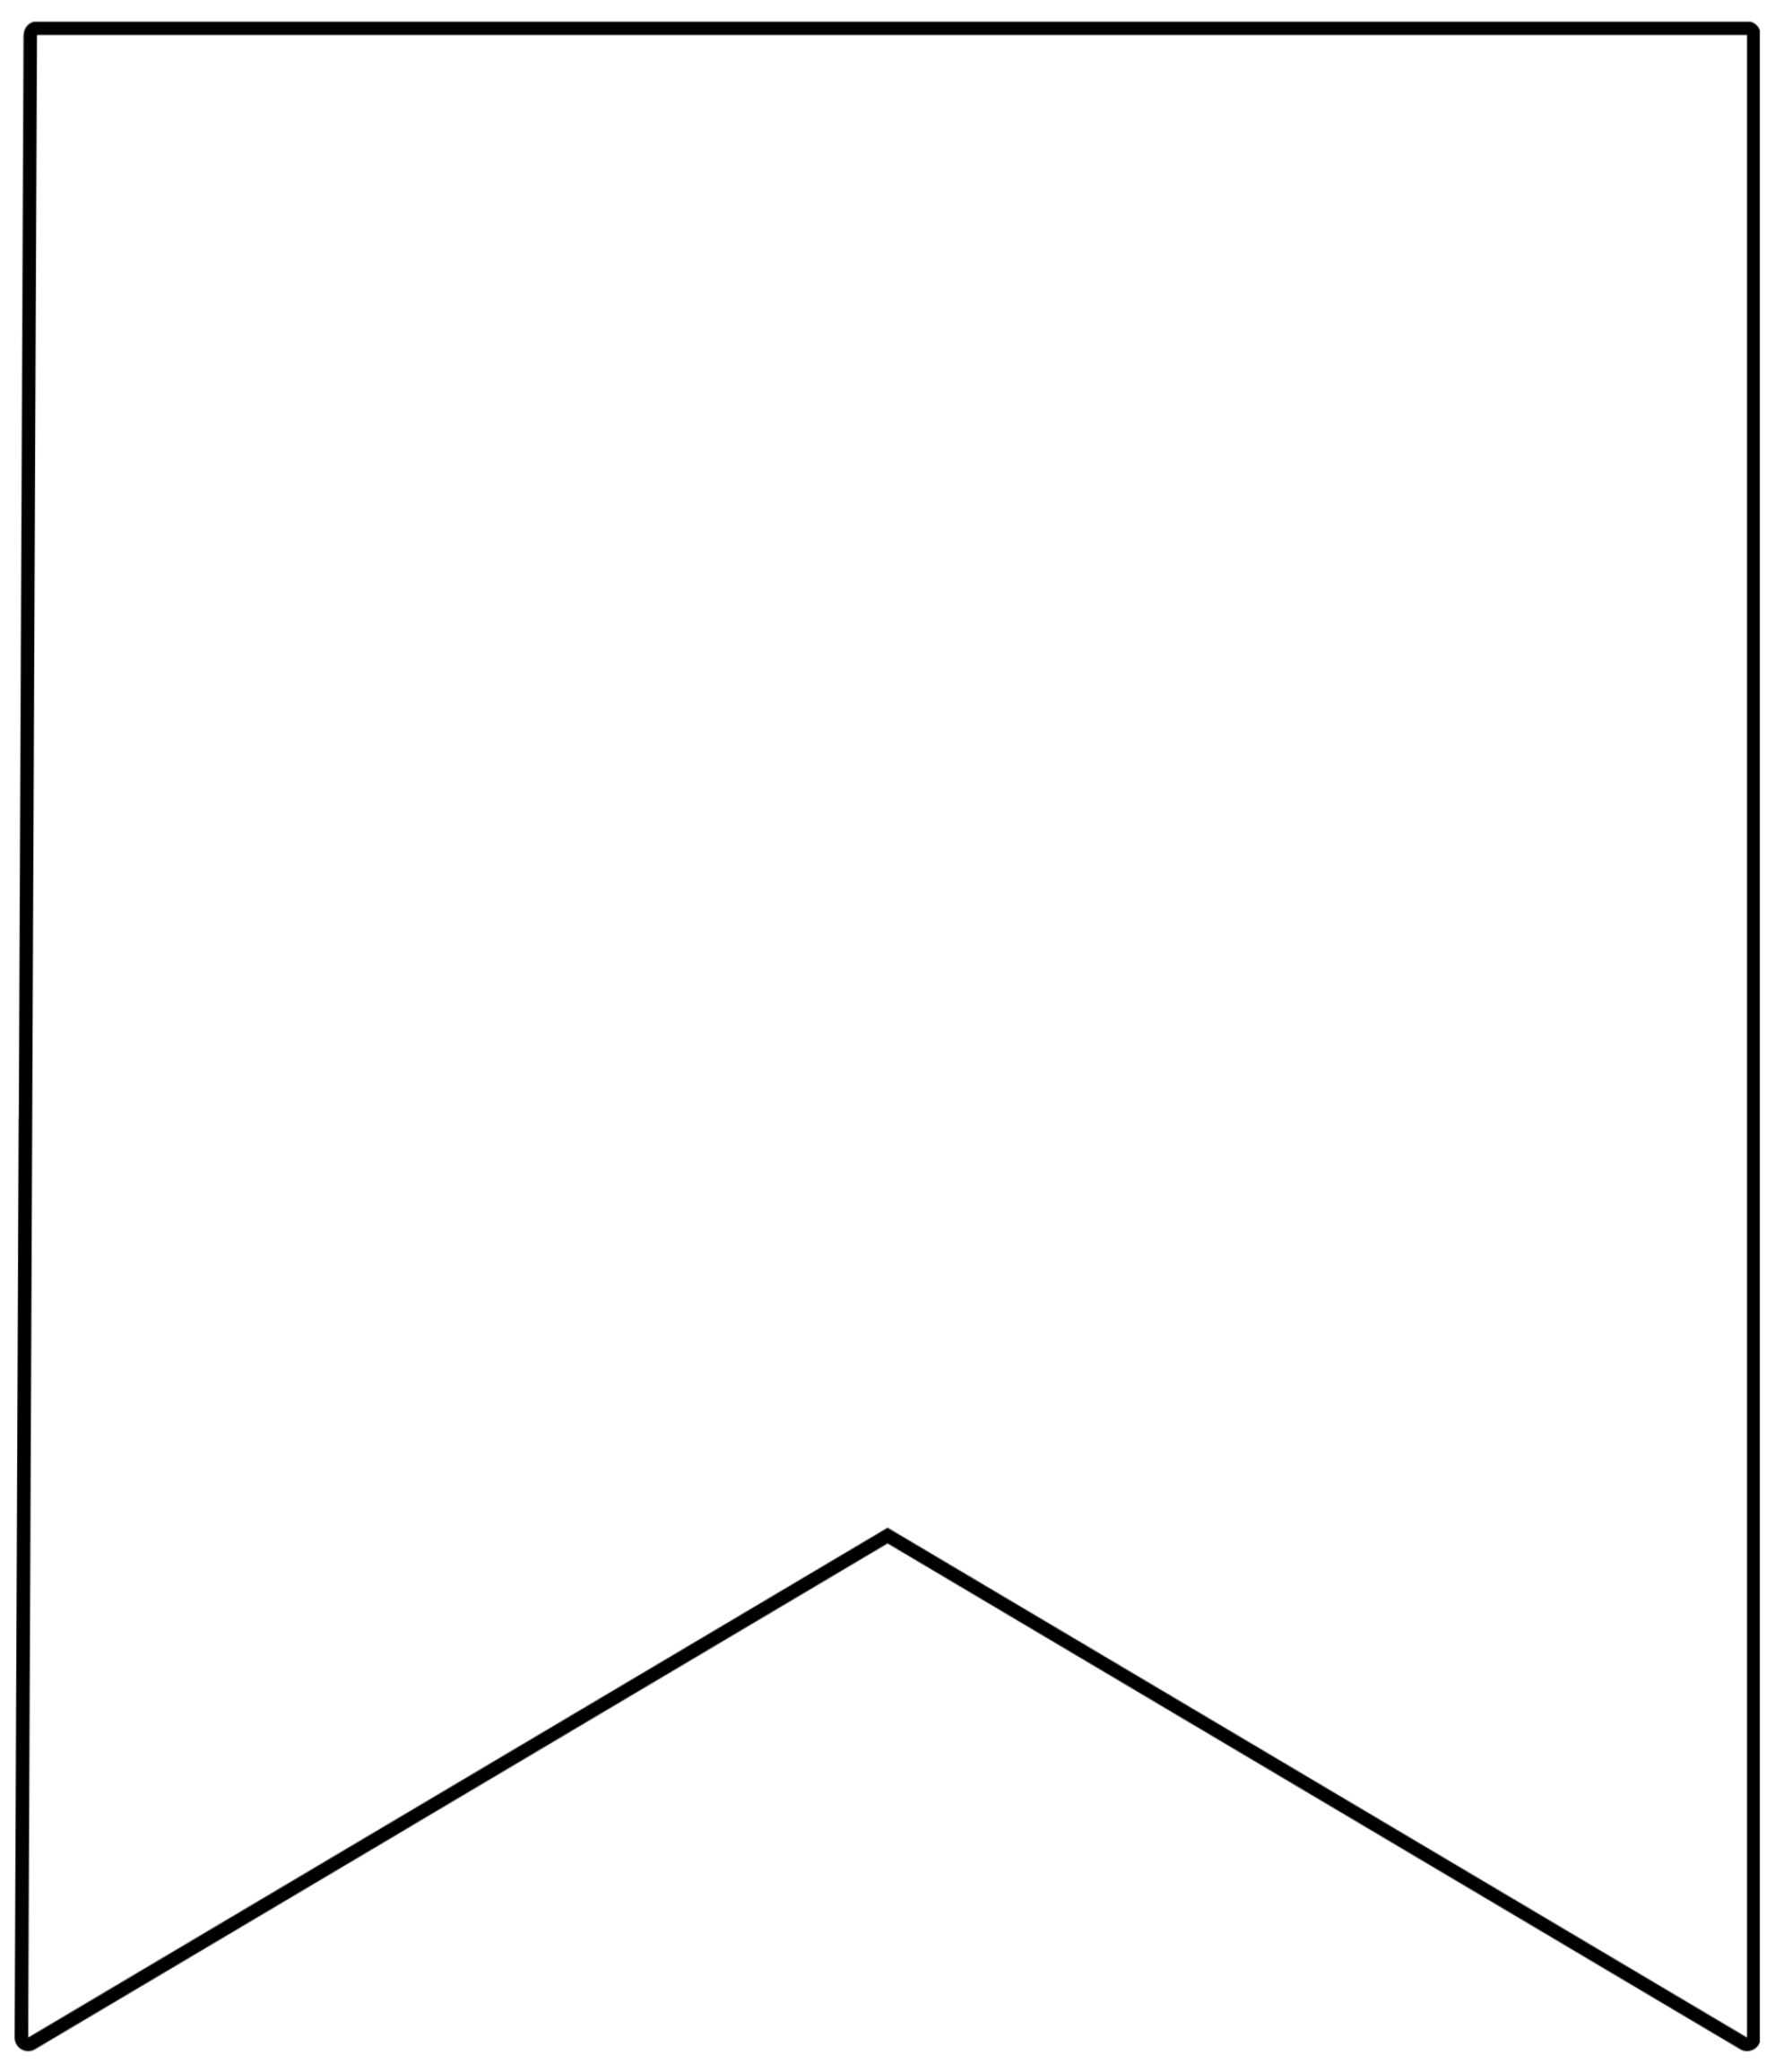 Free Printable Banner Templates {Blank Banners} - Paper Throughout Free Printable Banner Templates For Word